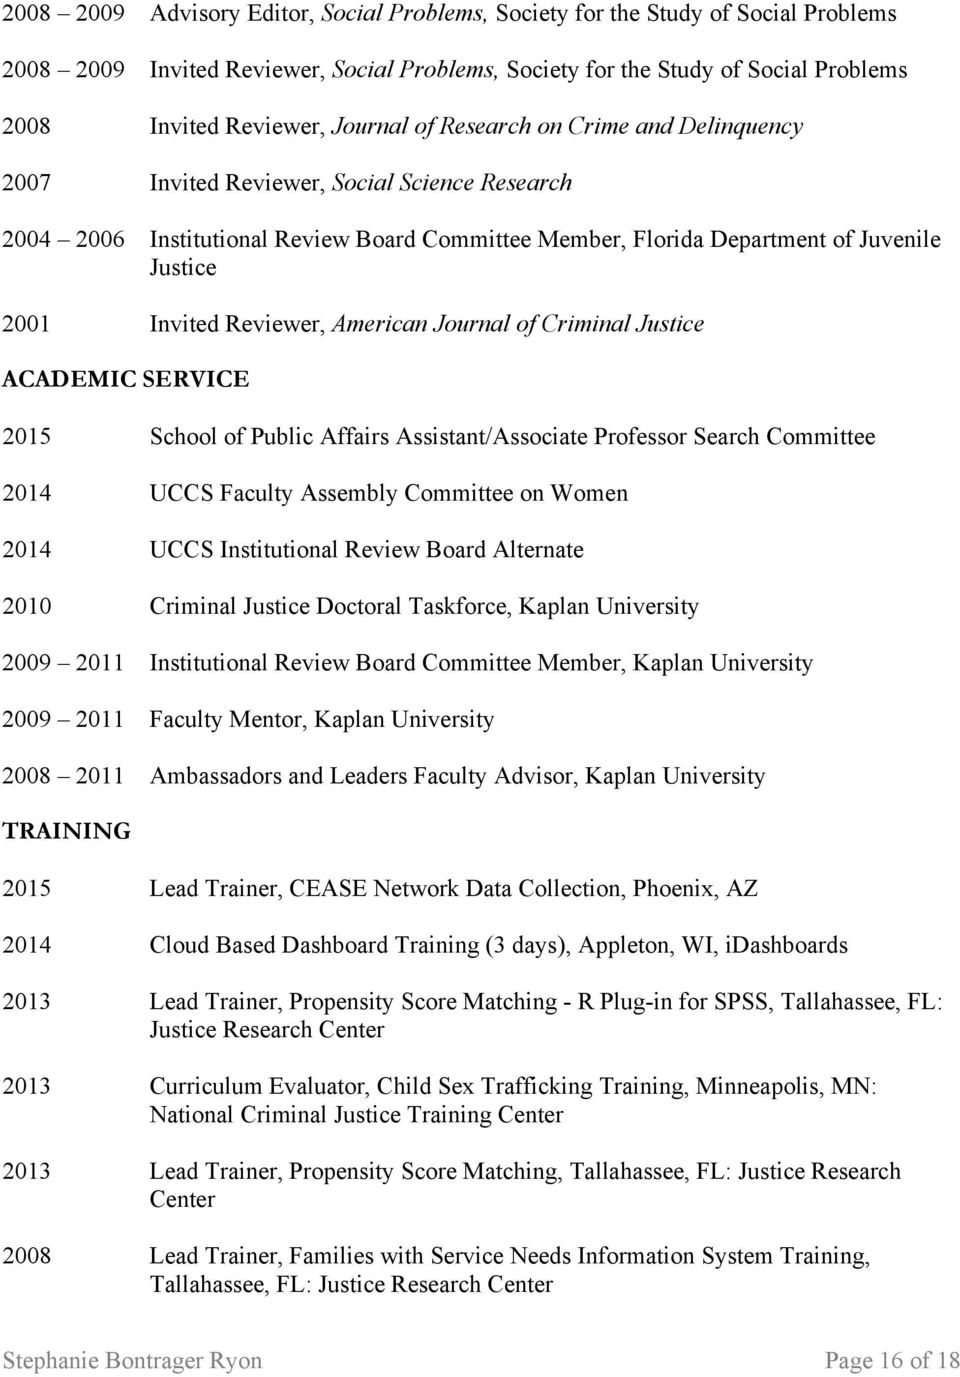 Reviewer, American Journal of Criminal Justice ACADEMIC SERVICE 2015 School of Public Affairs Assistant/Associate Professor Search Committee 2014 UCCS Faculty Assembly Committee on Women 2014 UCCS